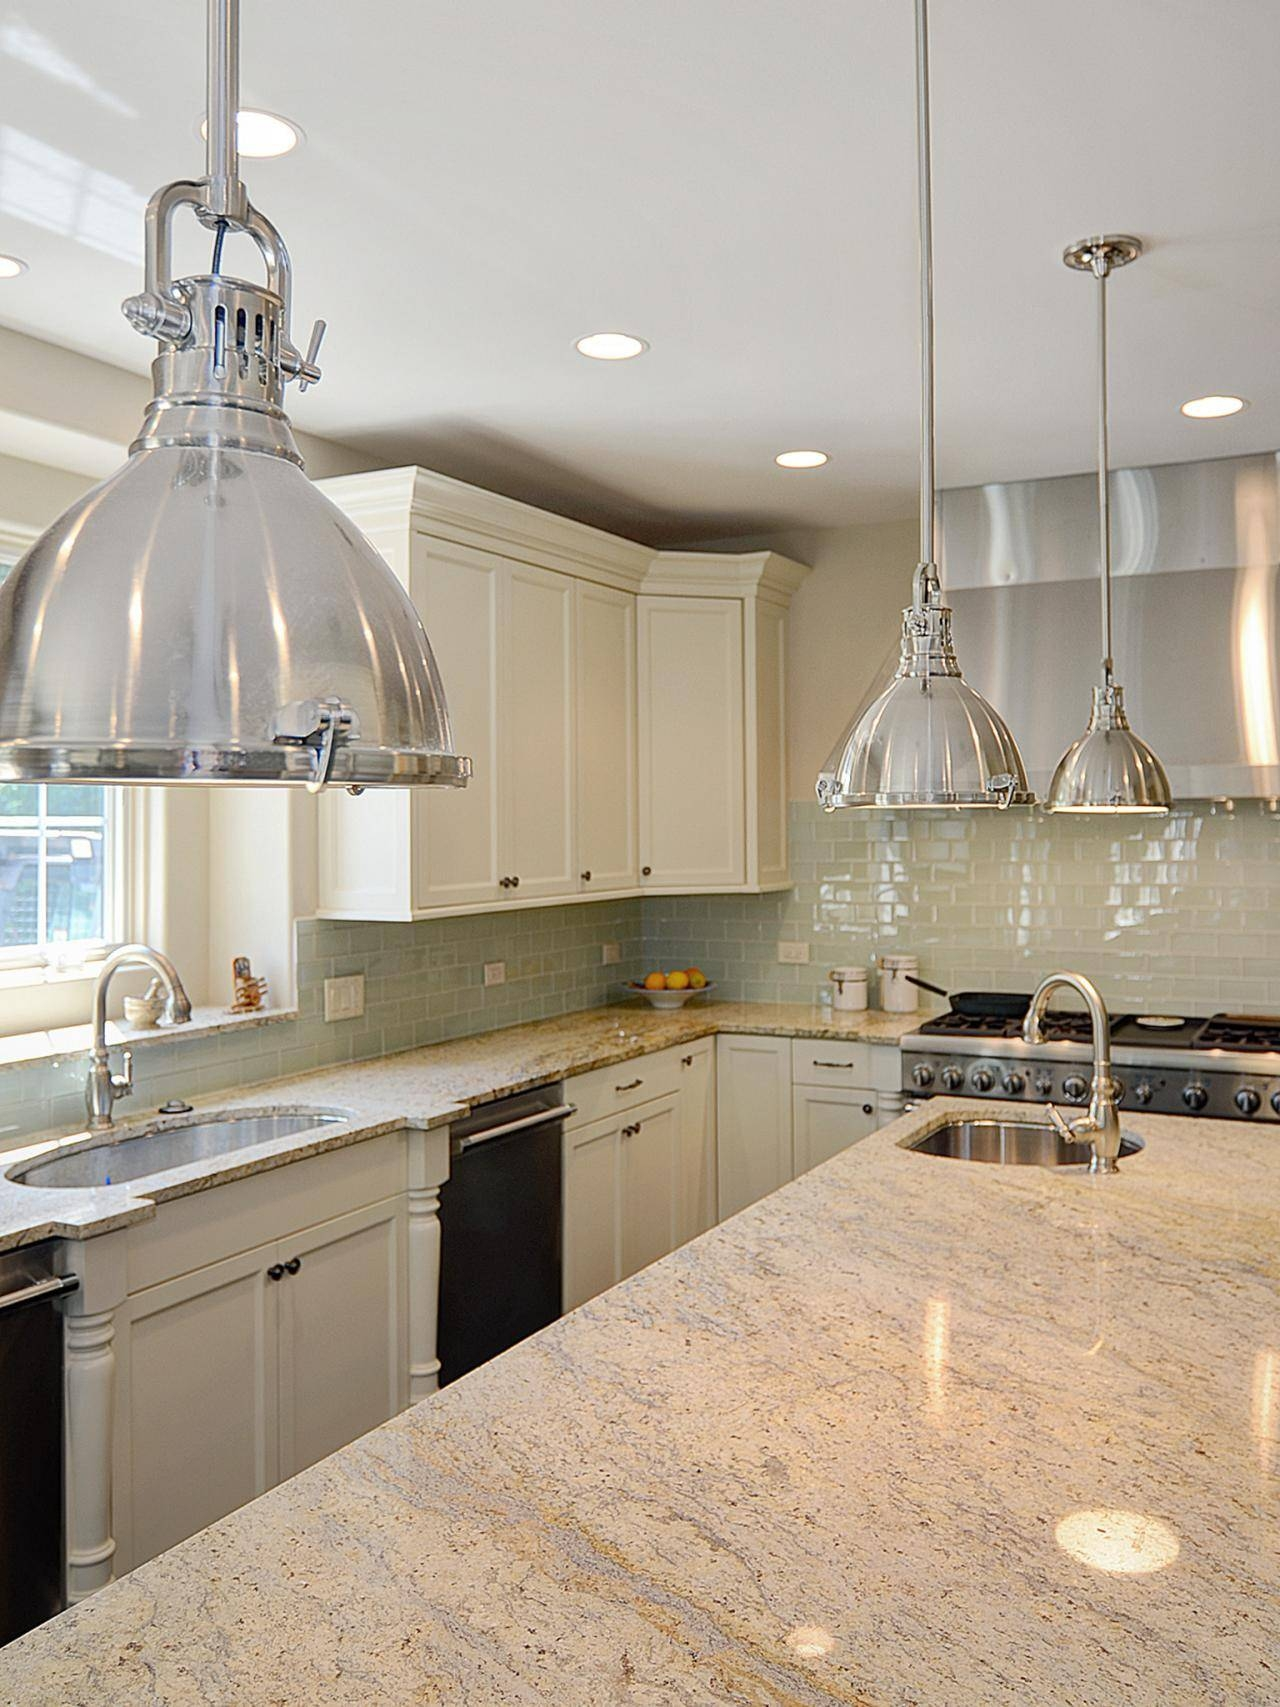 Glass Pendant Lights For Kitchen Island Mini Track Lighting Over Within Drop Pendant Lights For Kitchen (View 13 of 15)